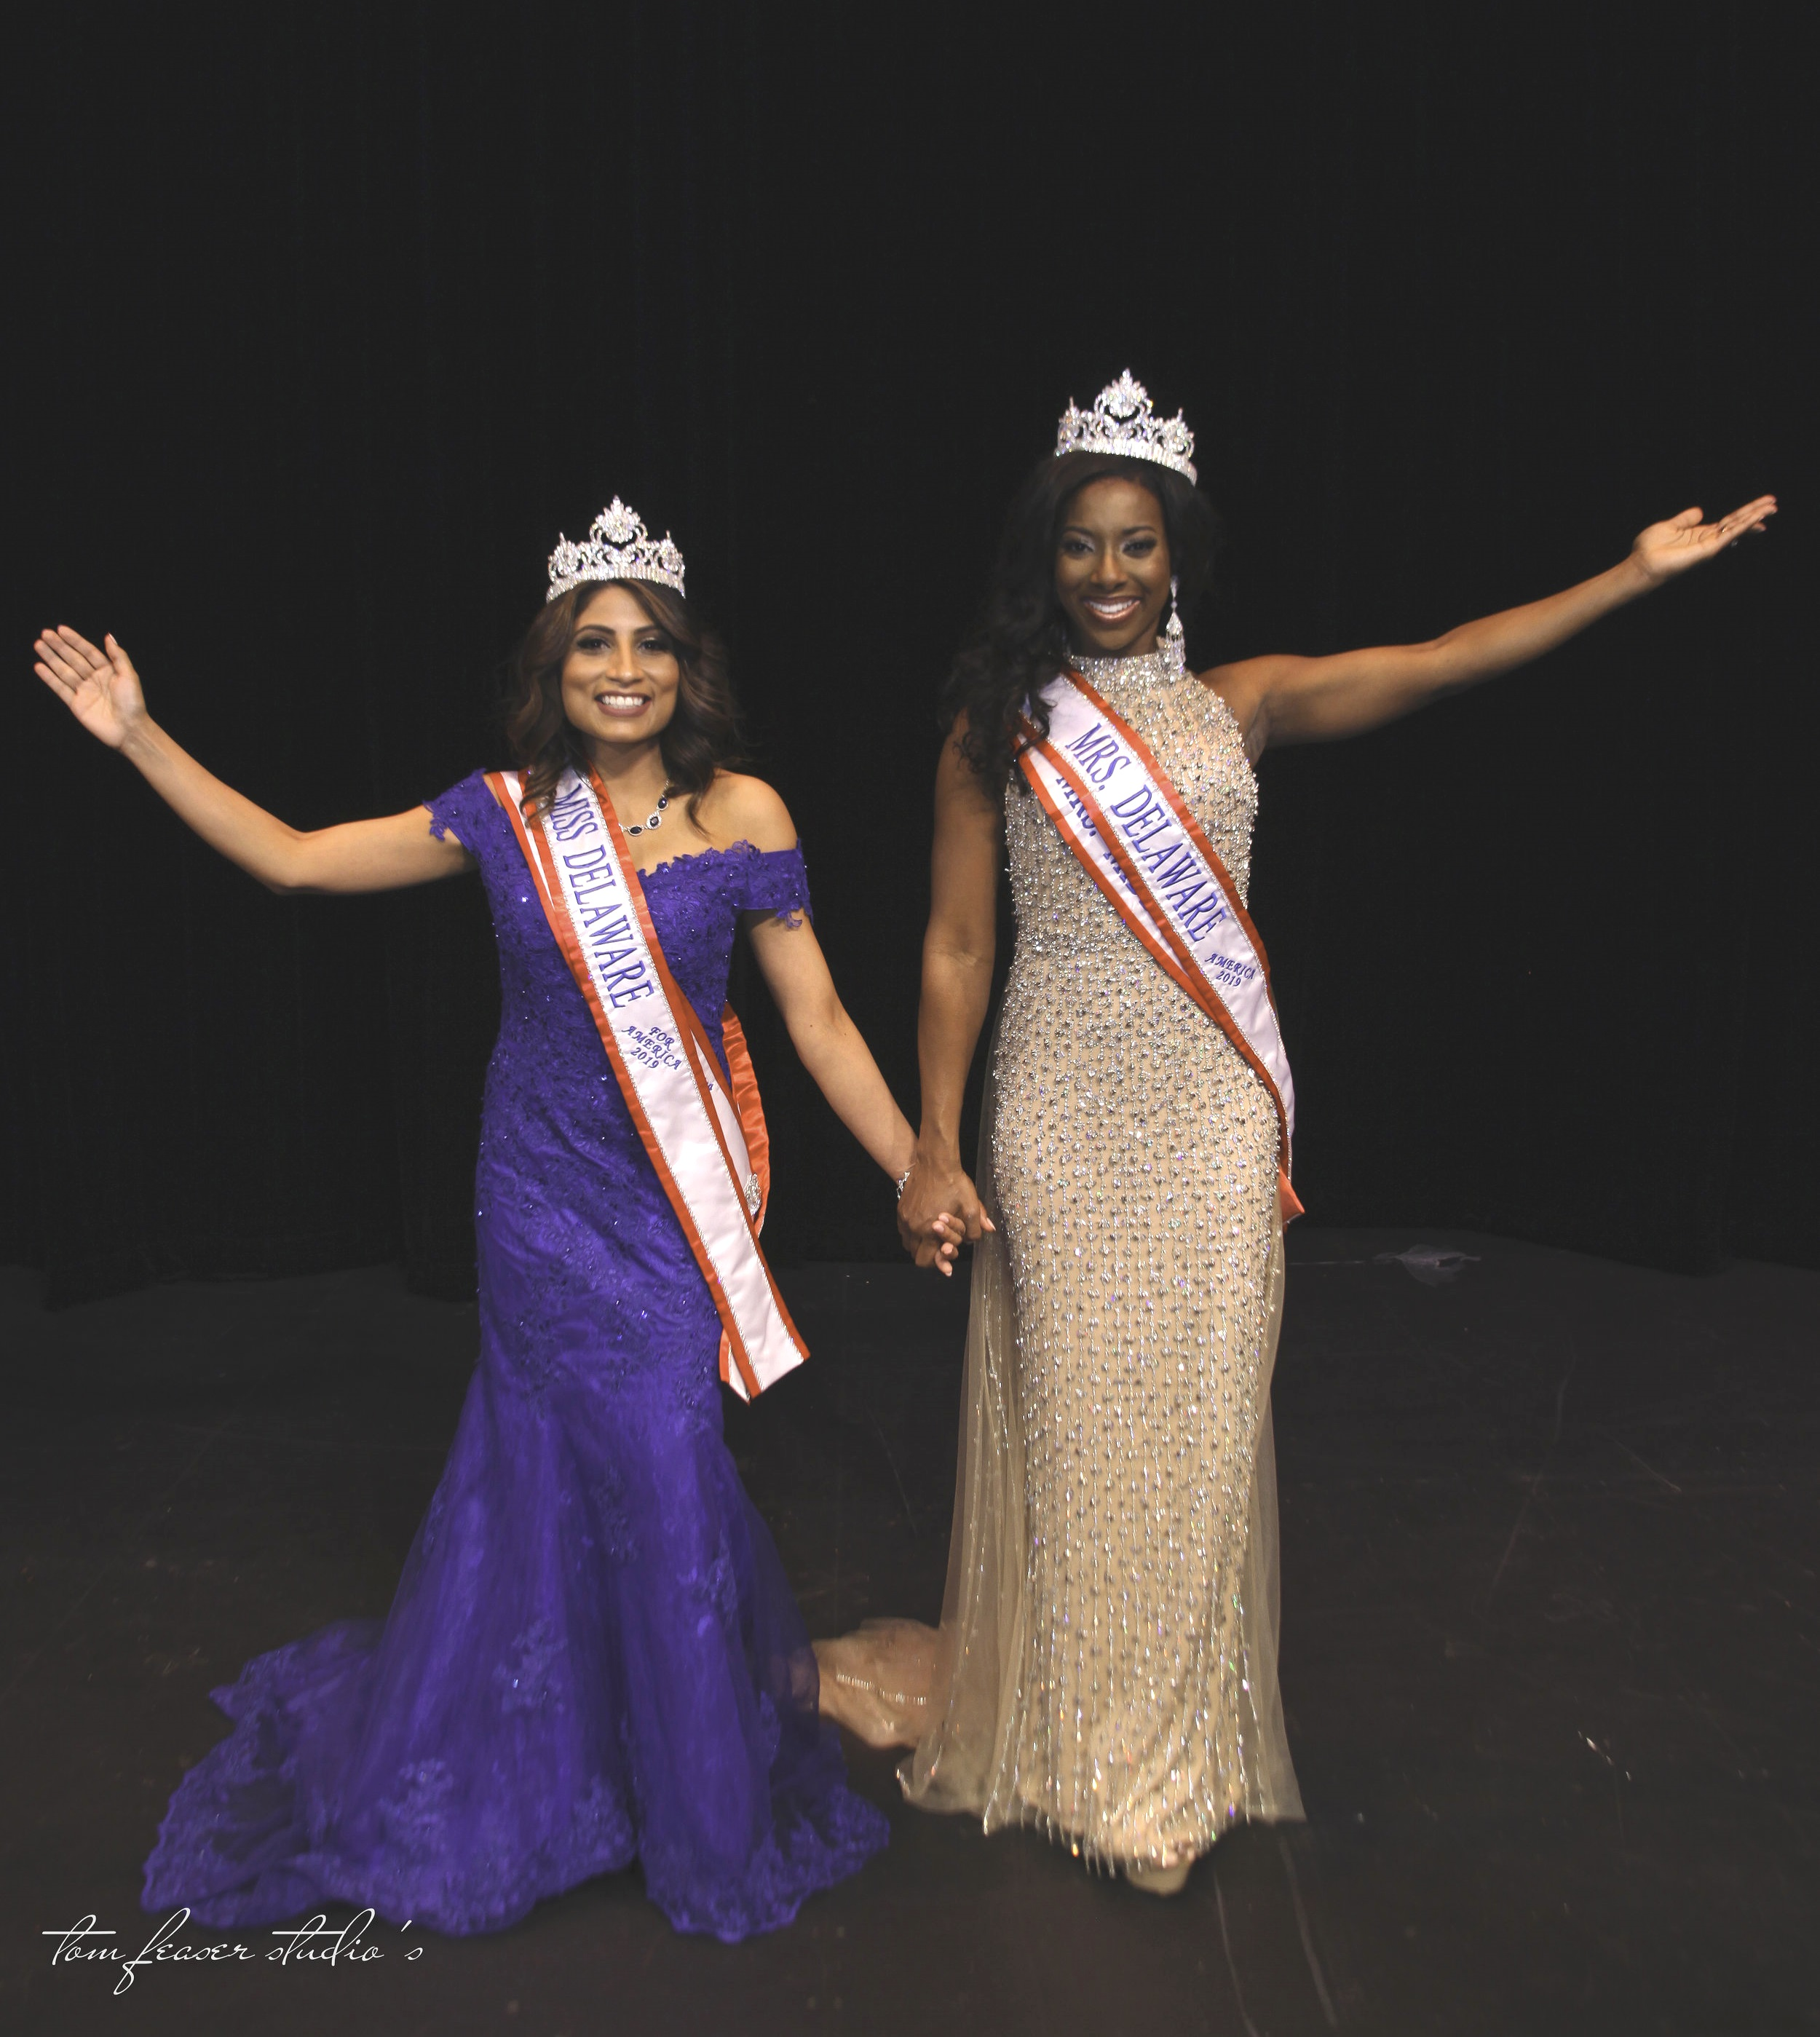 Miss Delaware for America and Mrs. Delaware America 2019 were crowned on Saturday night at the Grand Opera Theater in Wilmington, Delaware. Photo by Tom Feaser Studios.